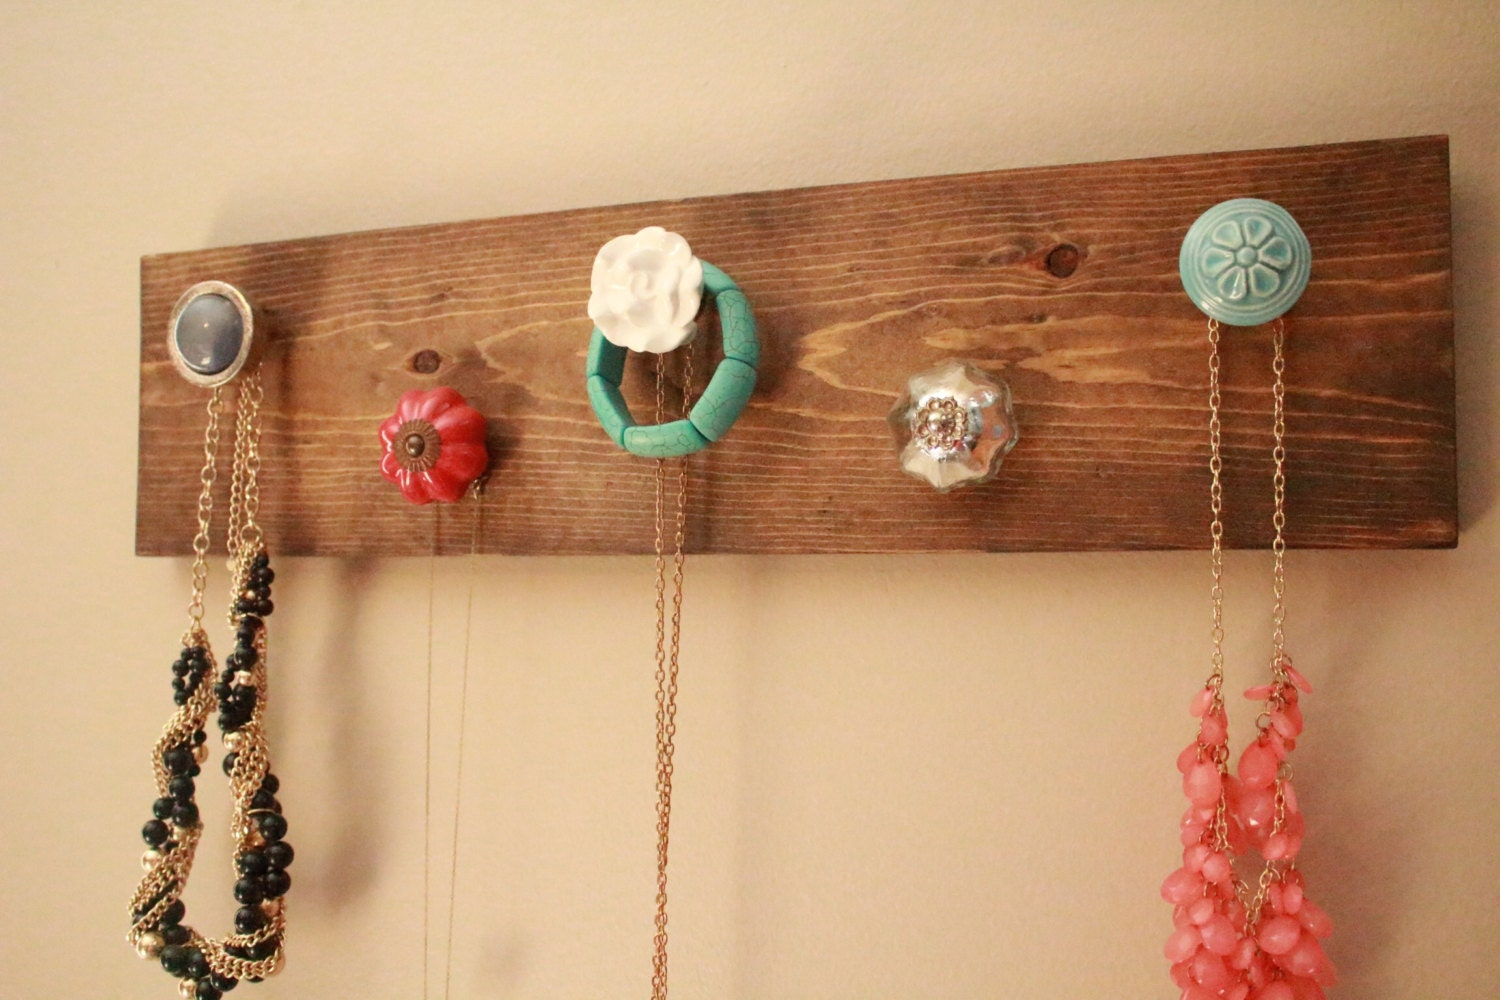 wall mounted 5 knob jewelry hanger